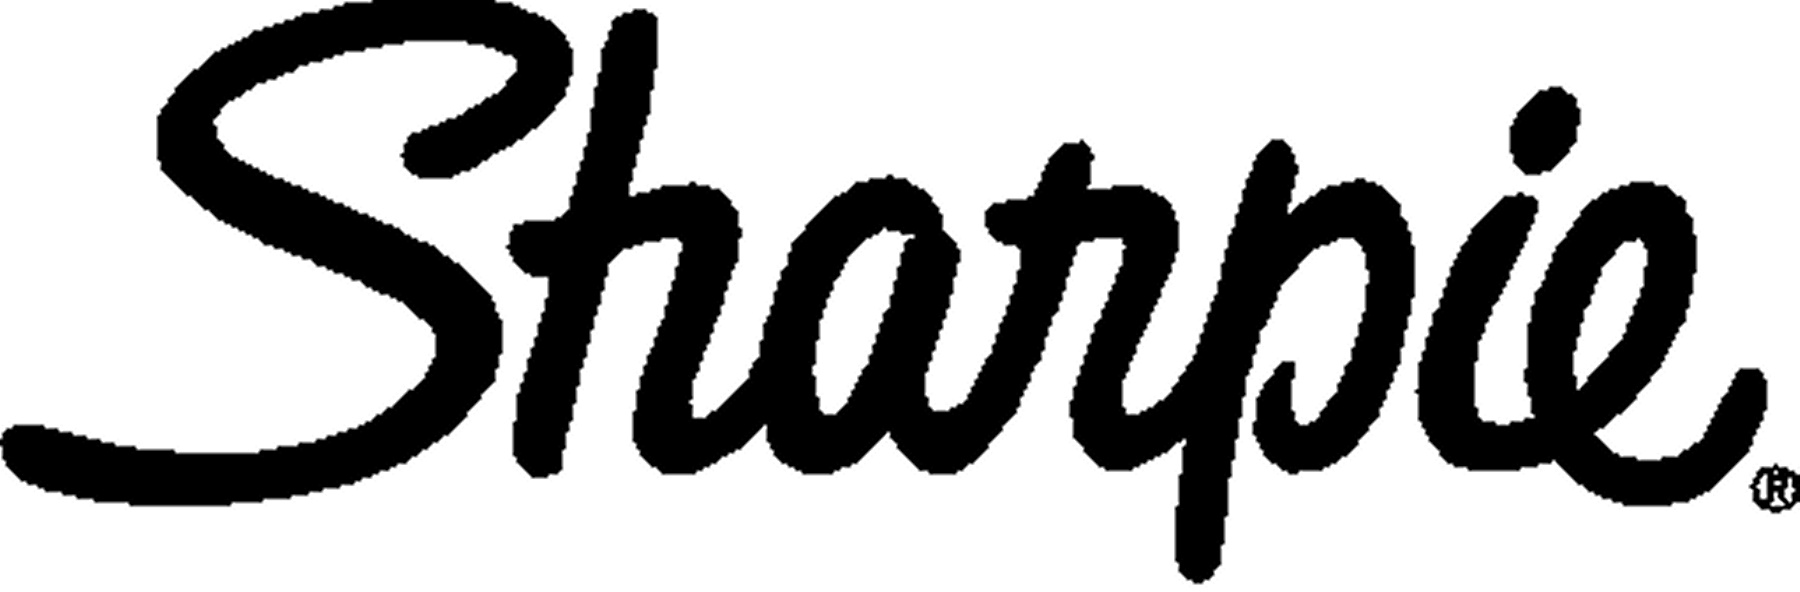 letters in cursive writing